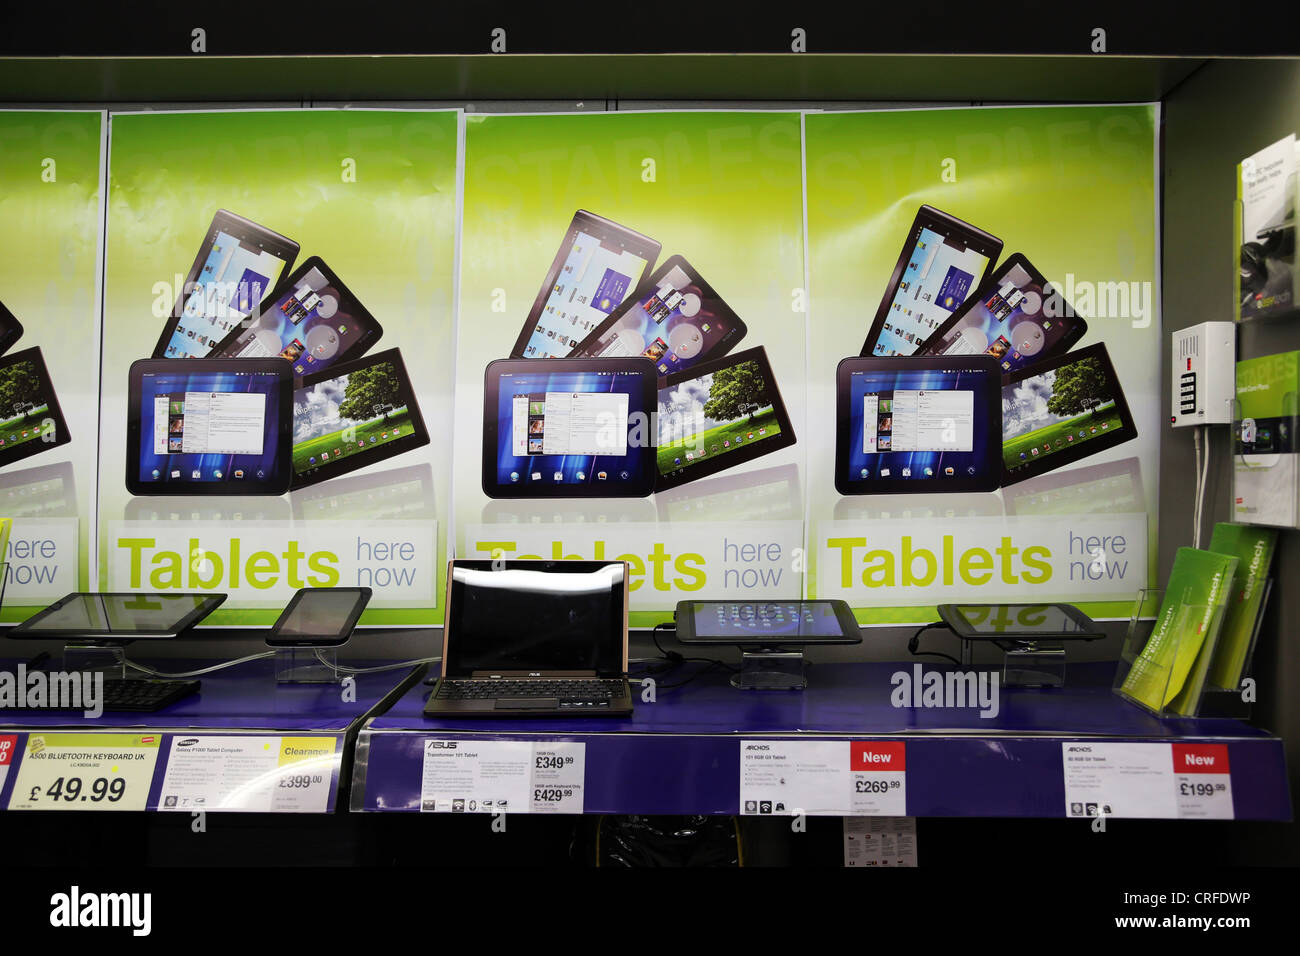 Computer Tablets On Display For Sale At Staples England - Stock Image